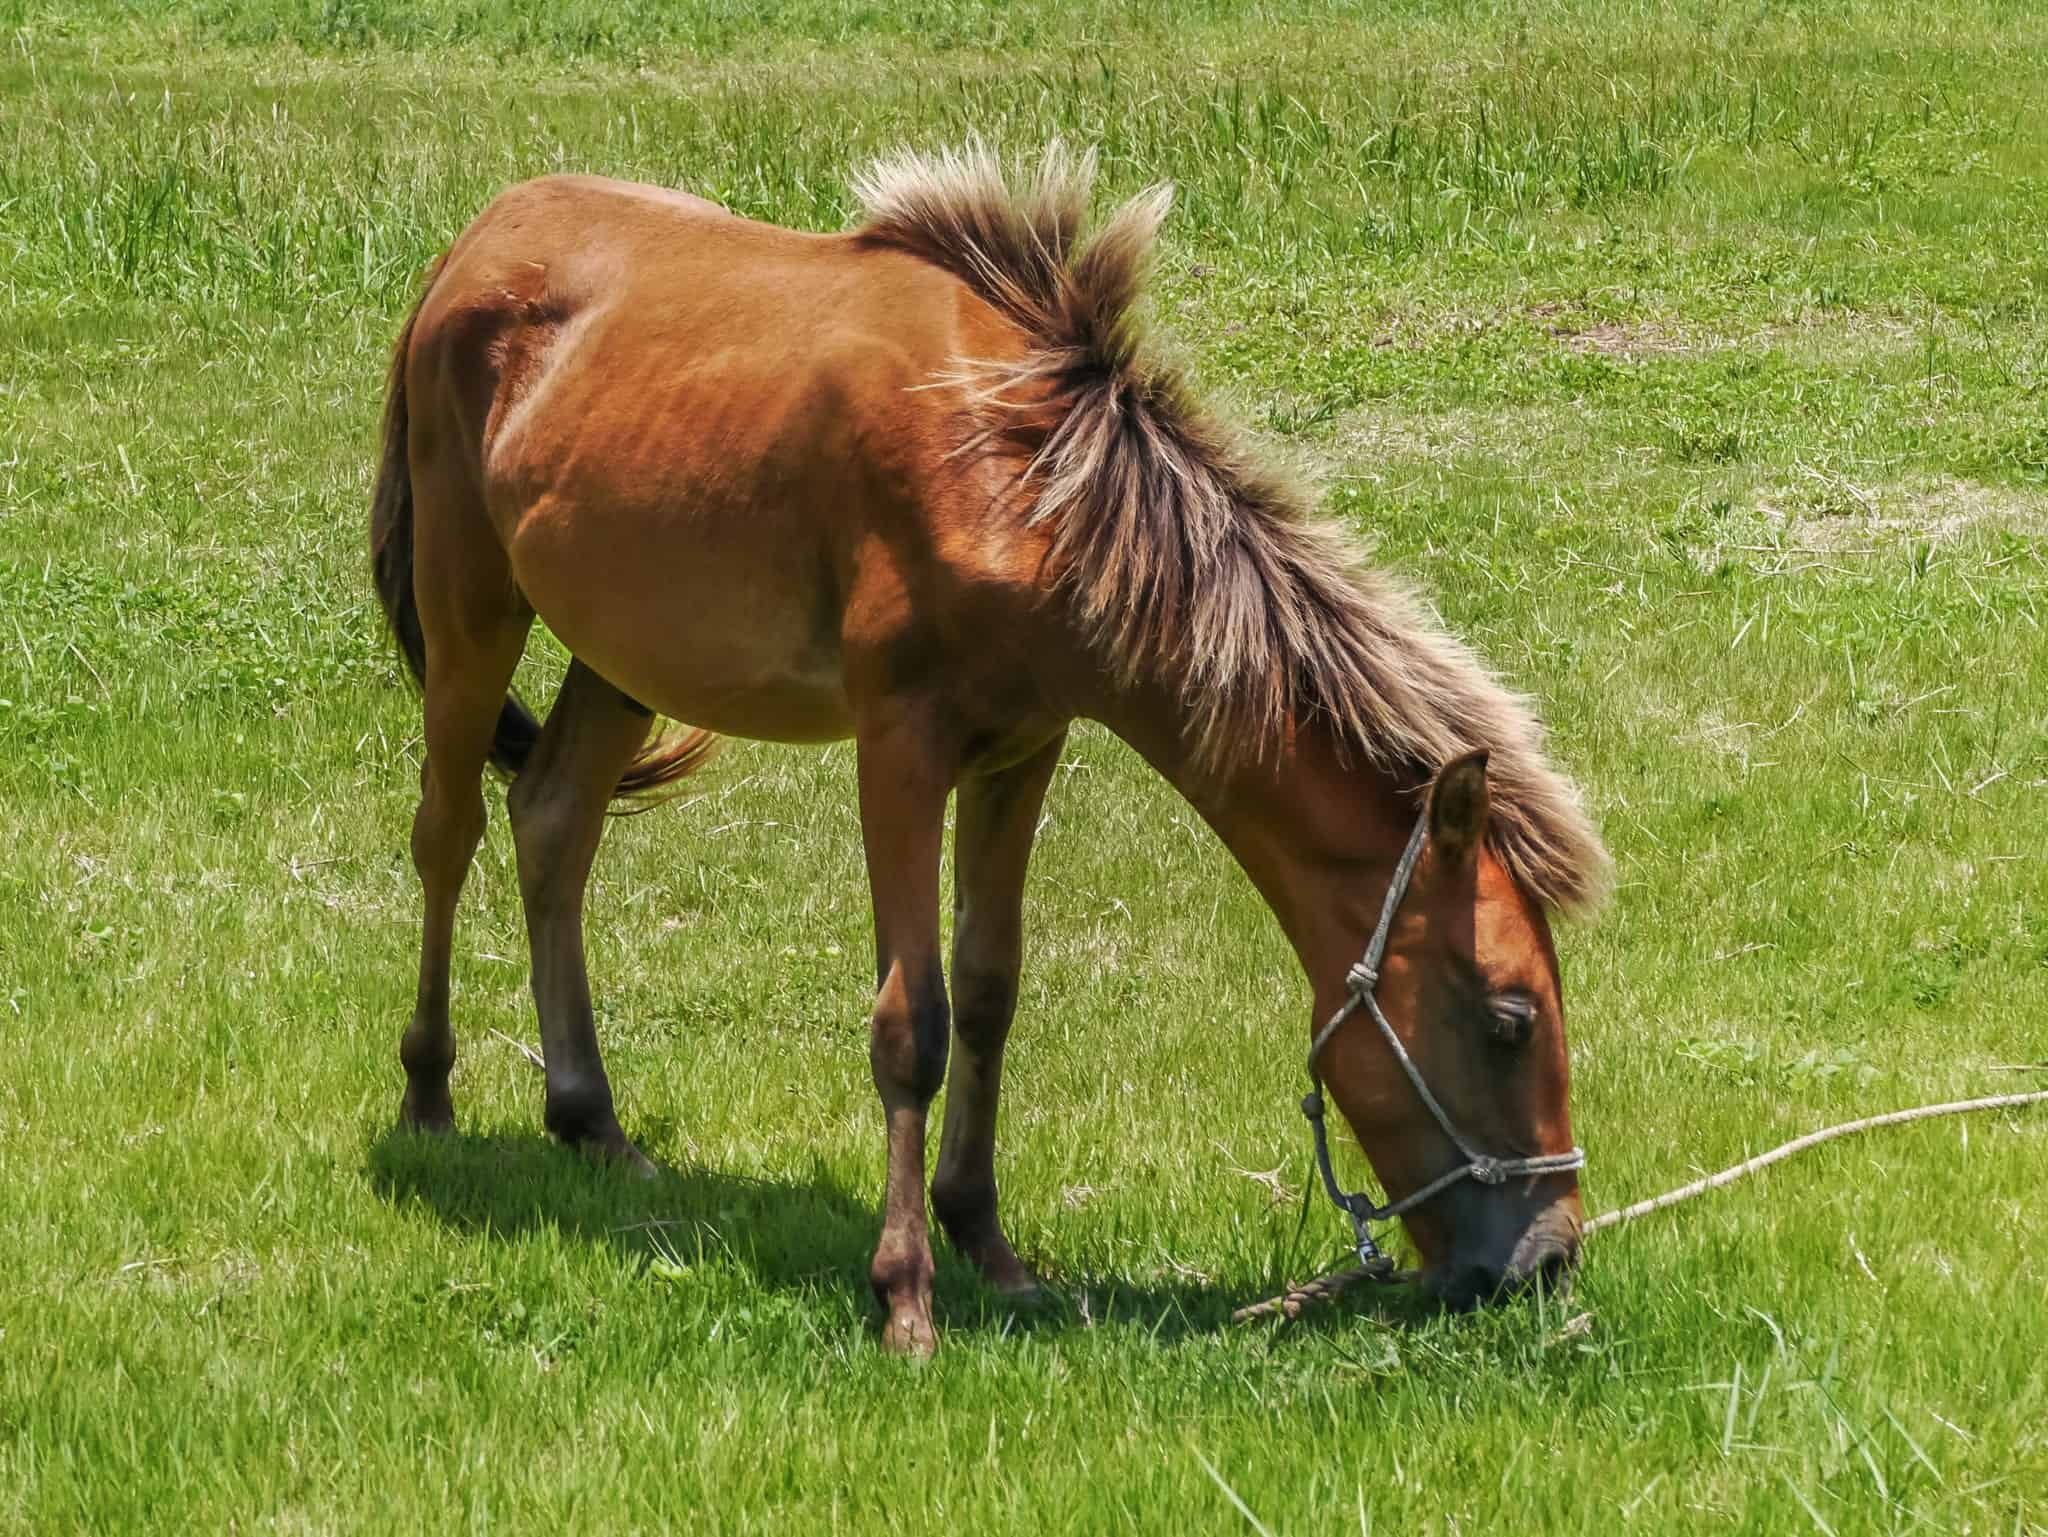 Yonaguni Horse, native breed horse to the Yonaguni Island, western border island of Japan. It's a part of Okinawa.